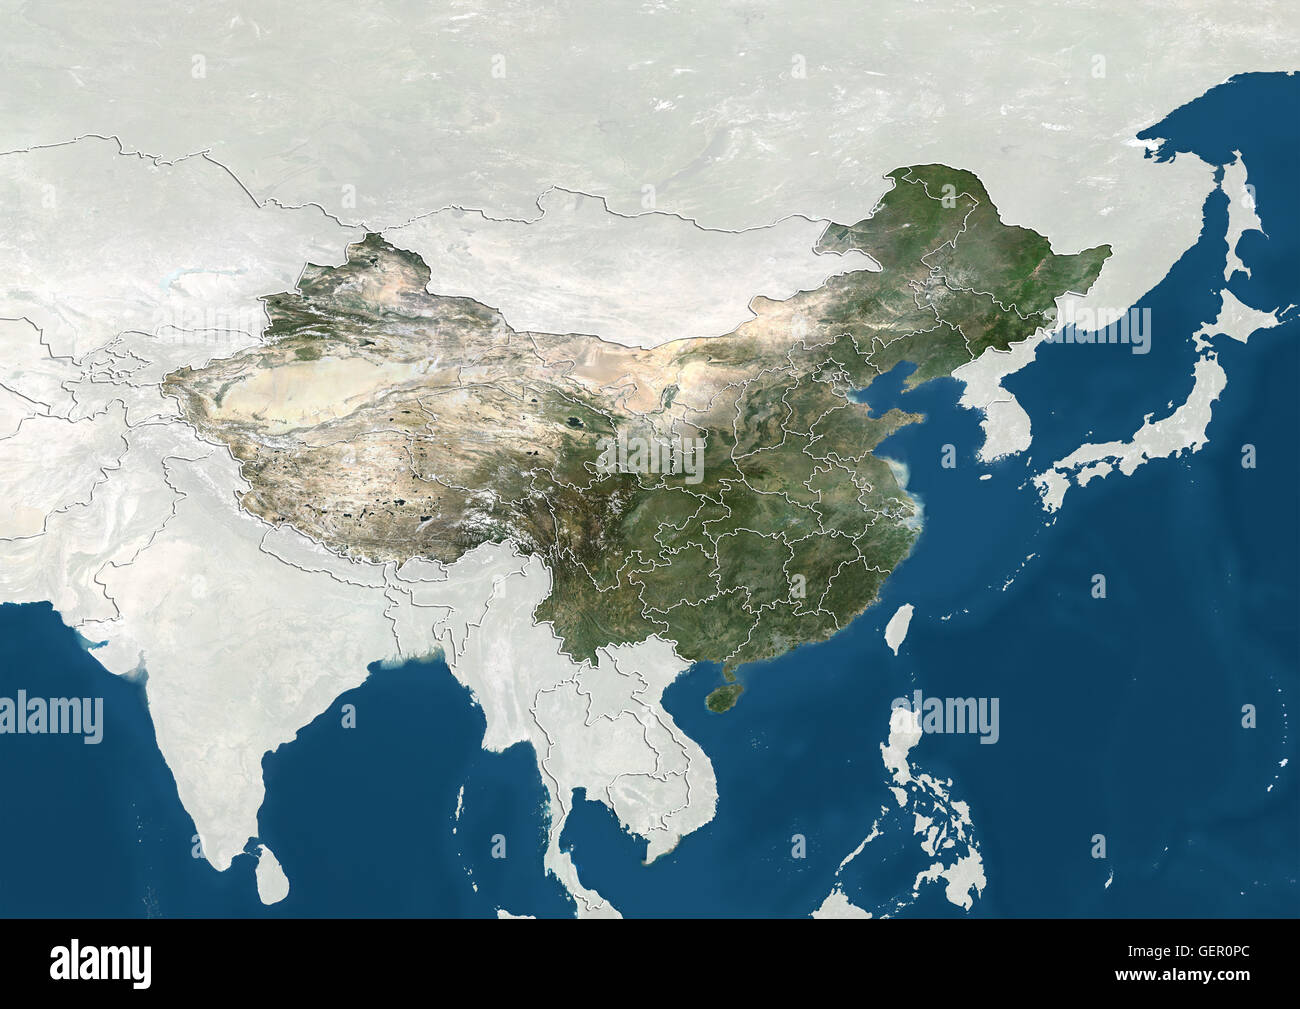 Satellite view of China with boundaries of provinces. This image was compiled from data acquired by Landsat satellites. - Stock Image